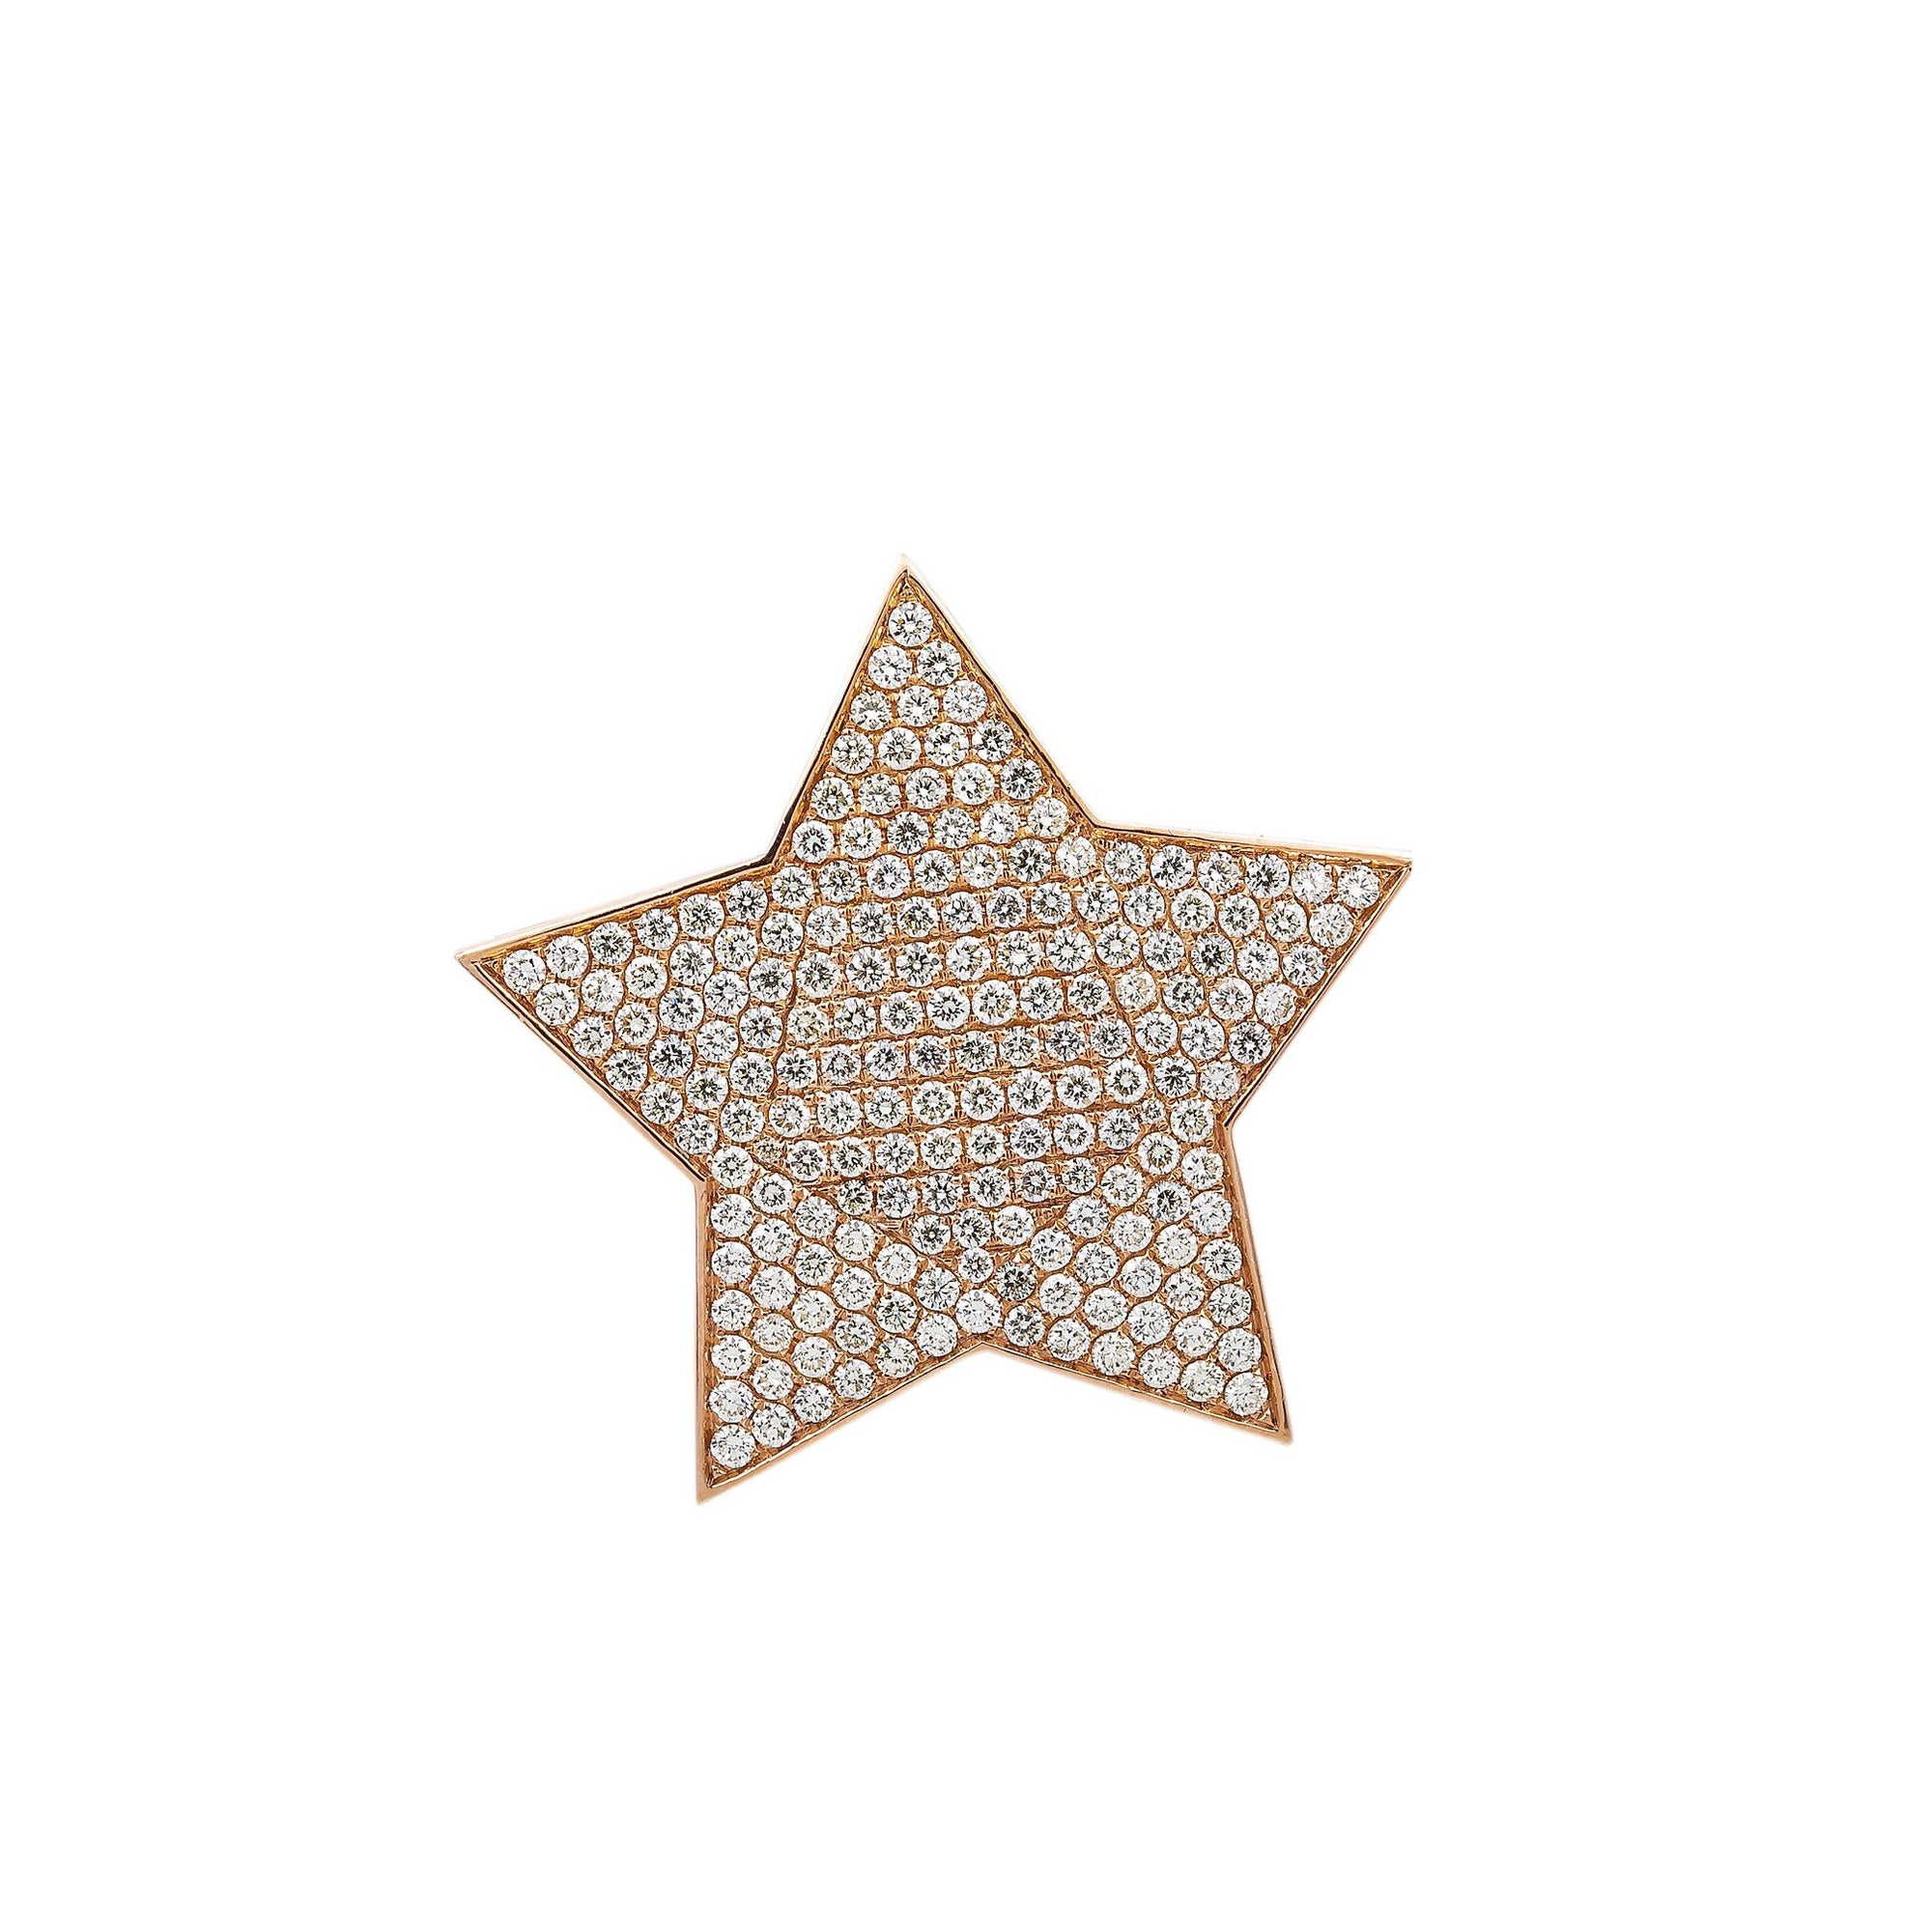 Unisex 14K Rose Gold Star Pendant with 3.83 CT Diamonds